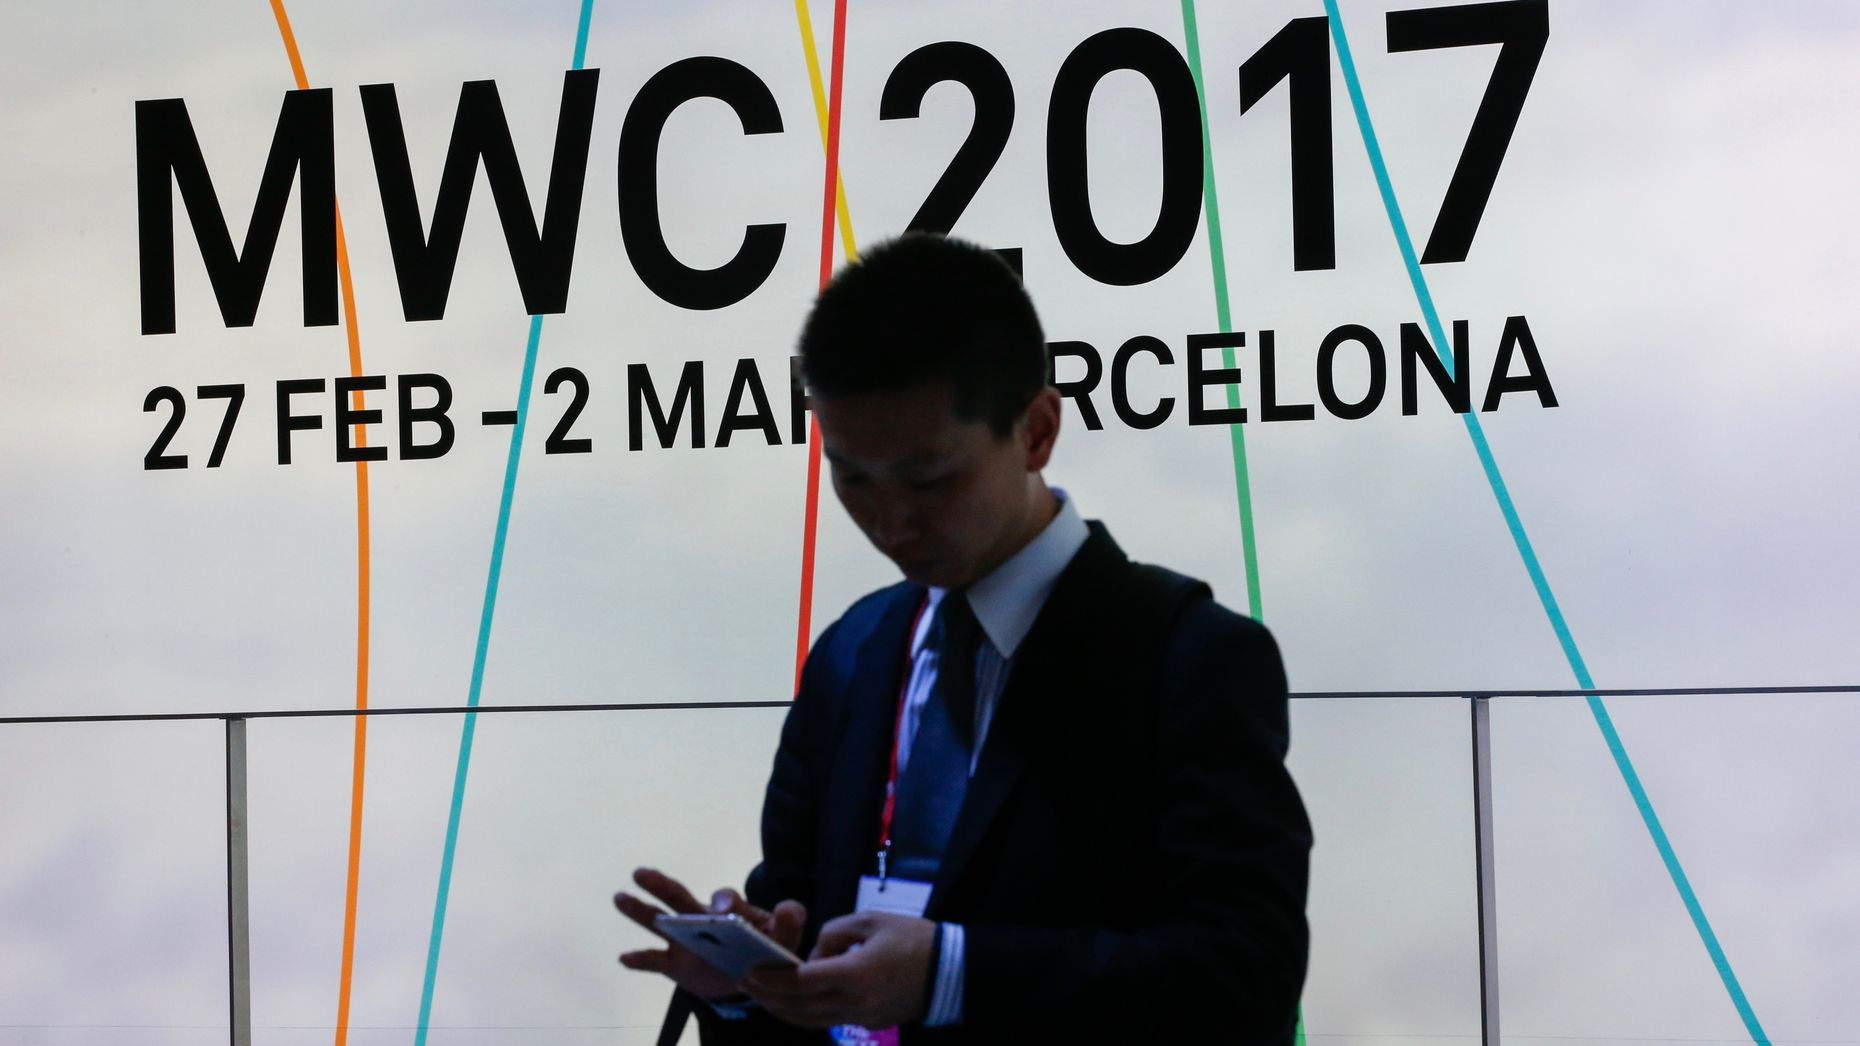 An attendee at this week's Mobile World Congress in Barcelona. Photo by Bloomberg.